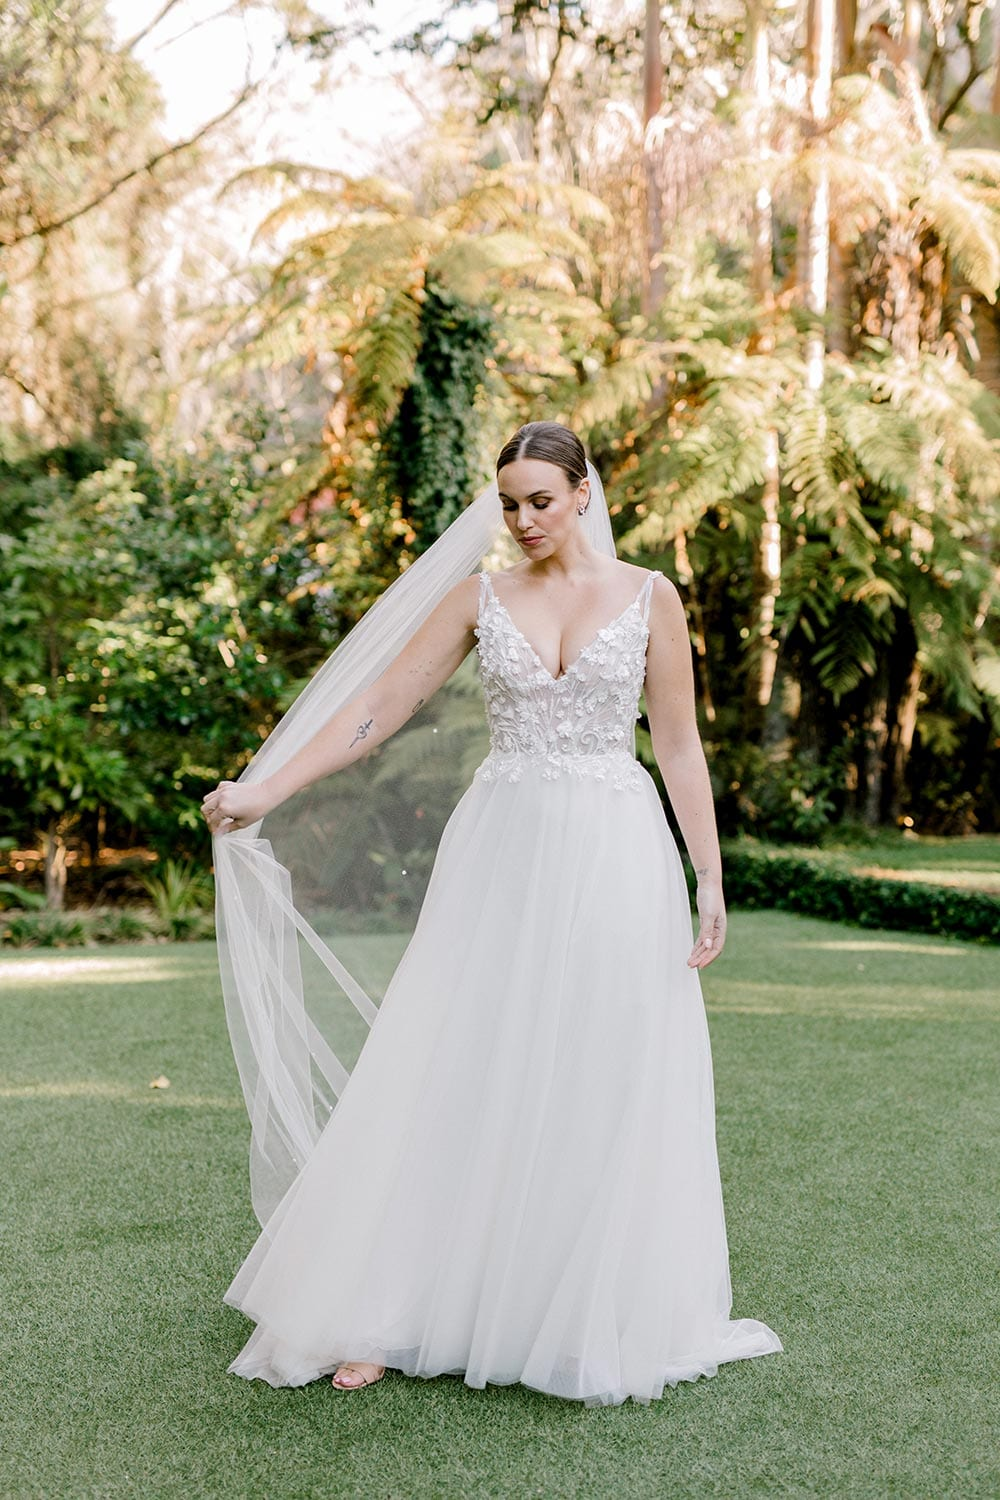 Serena Wedding Gown from Vinka Design - Classic & feminine wedding gown. Deep V-neckline semi-sheer structured bodice appliqued with flowers & leaves. Dreamy layered soft tulle skirt with side-split. Full view of tulle skirt. Photograph in landscaped gardens.